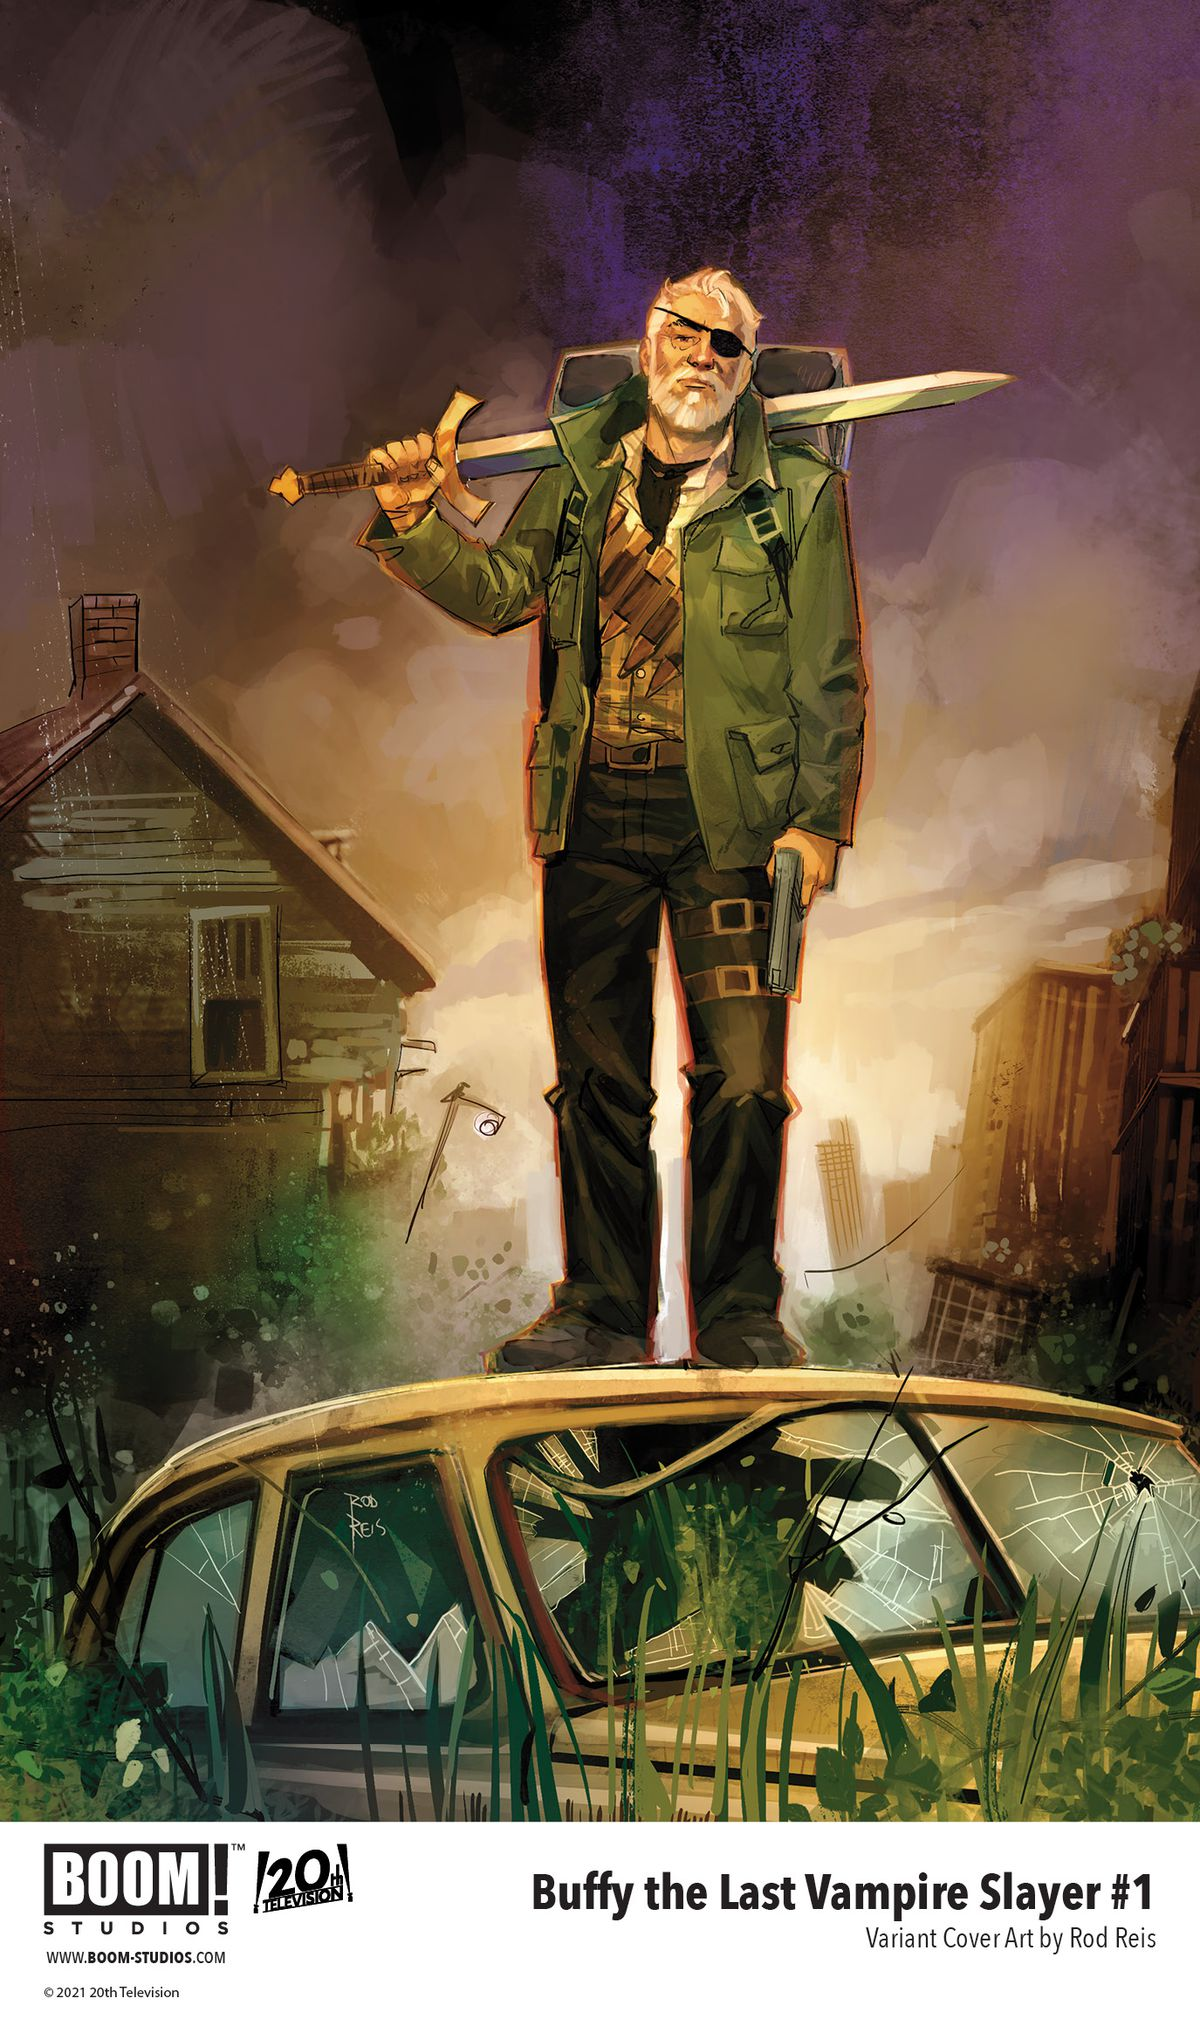 Buffy The Last Vampire Slayer - variant cover art for the first issue, which shows an old man in a post-apocalyptic scene with a sword slung over his shoulder.